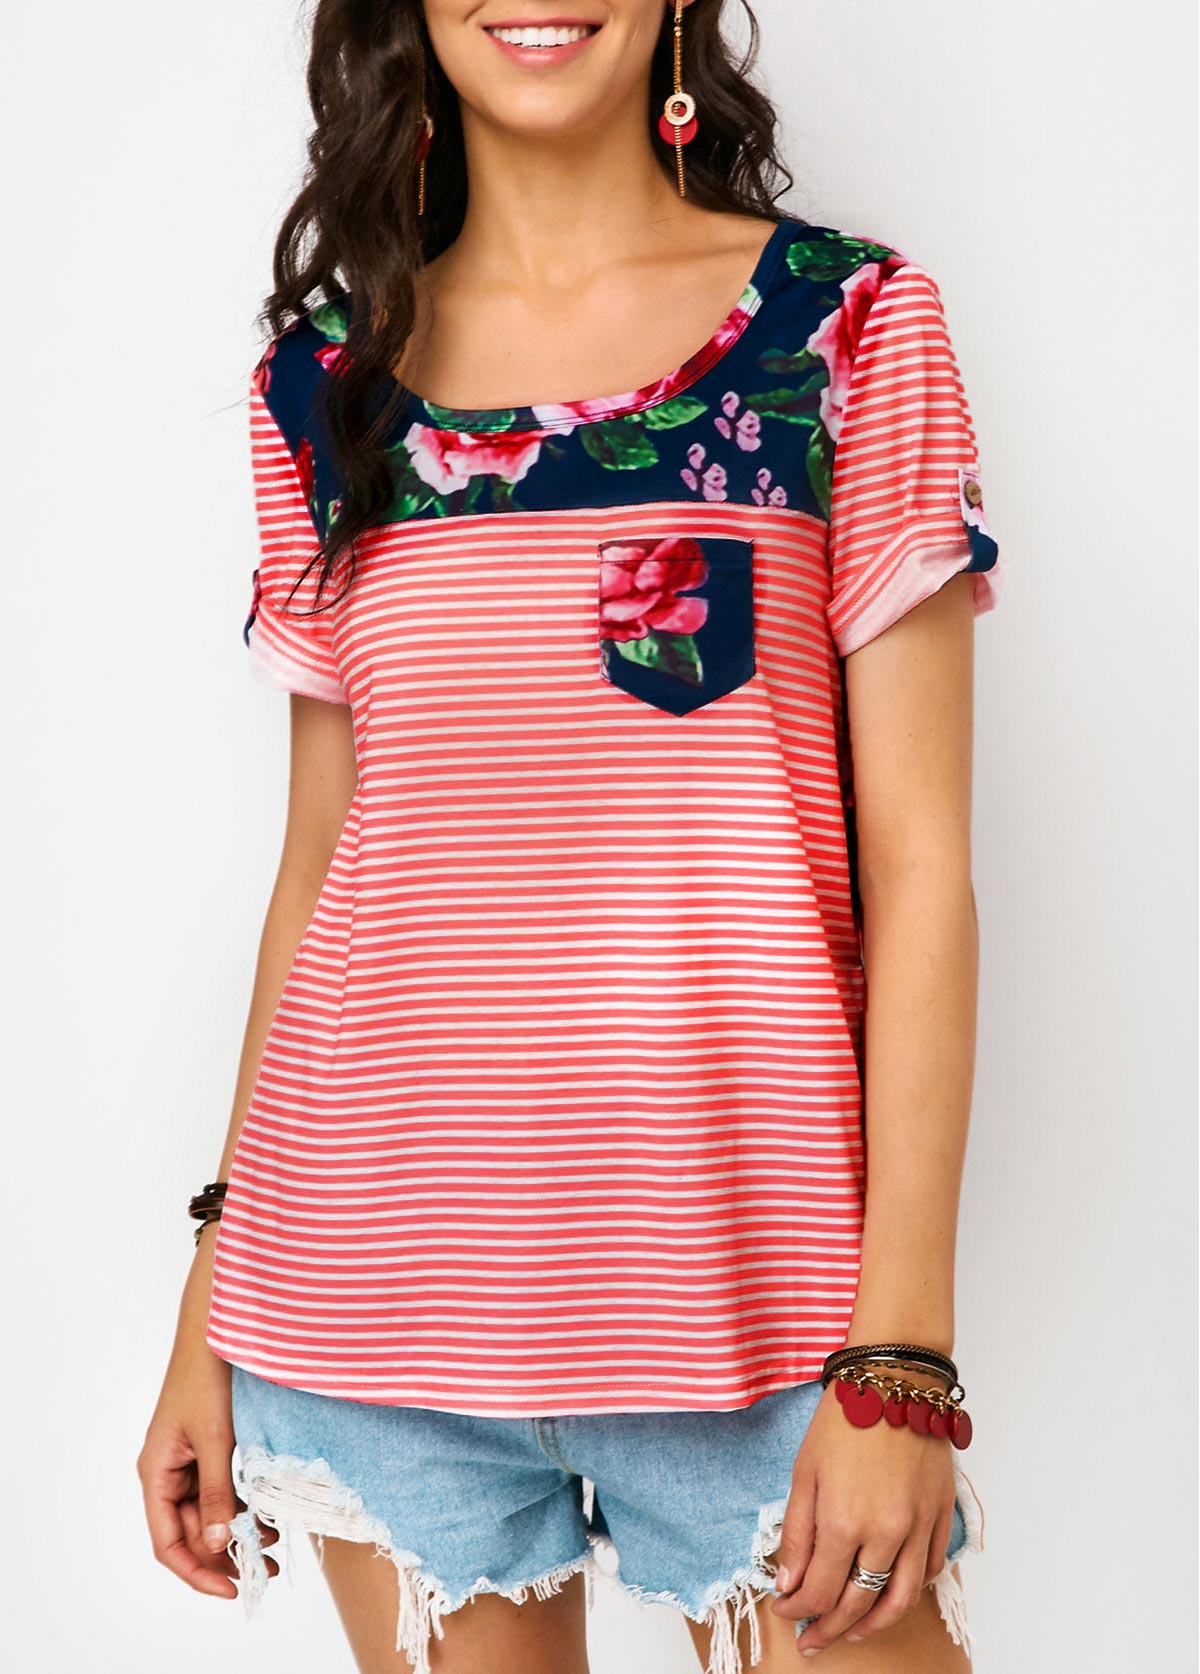 Chest Pocket Flower Print T Shirt